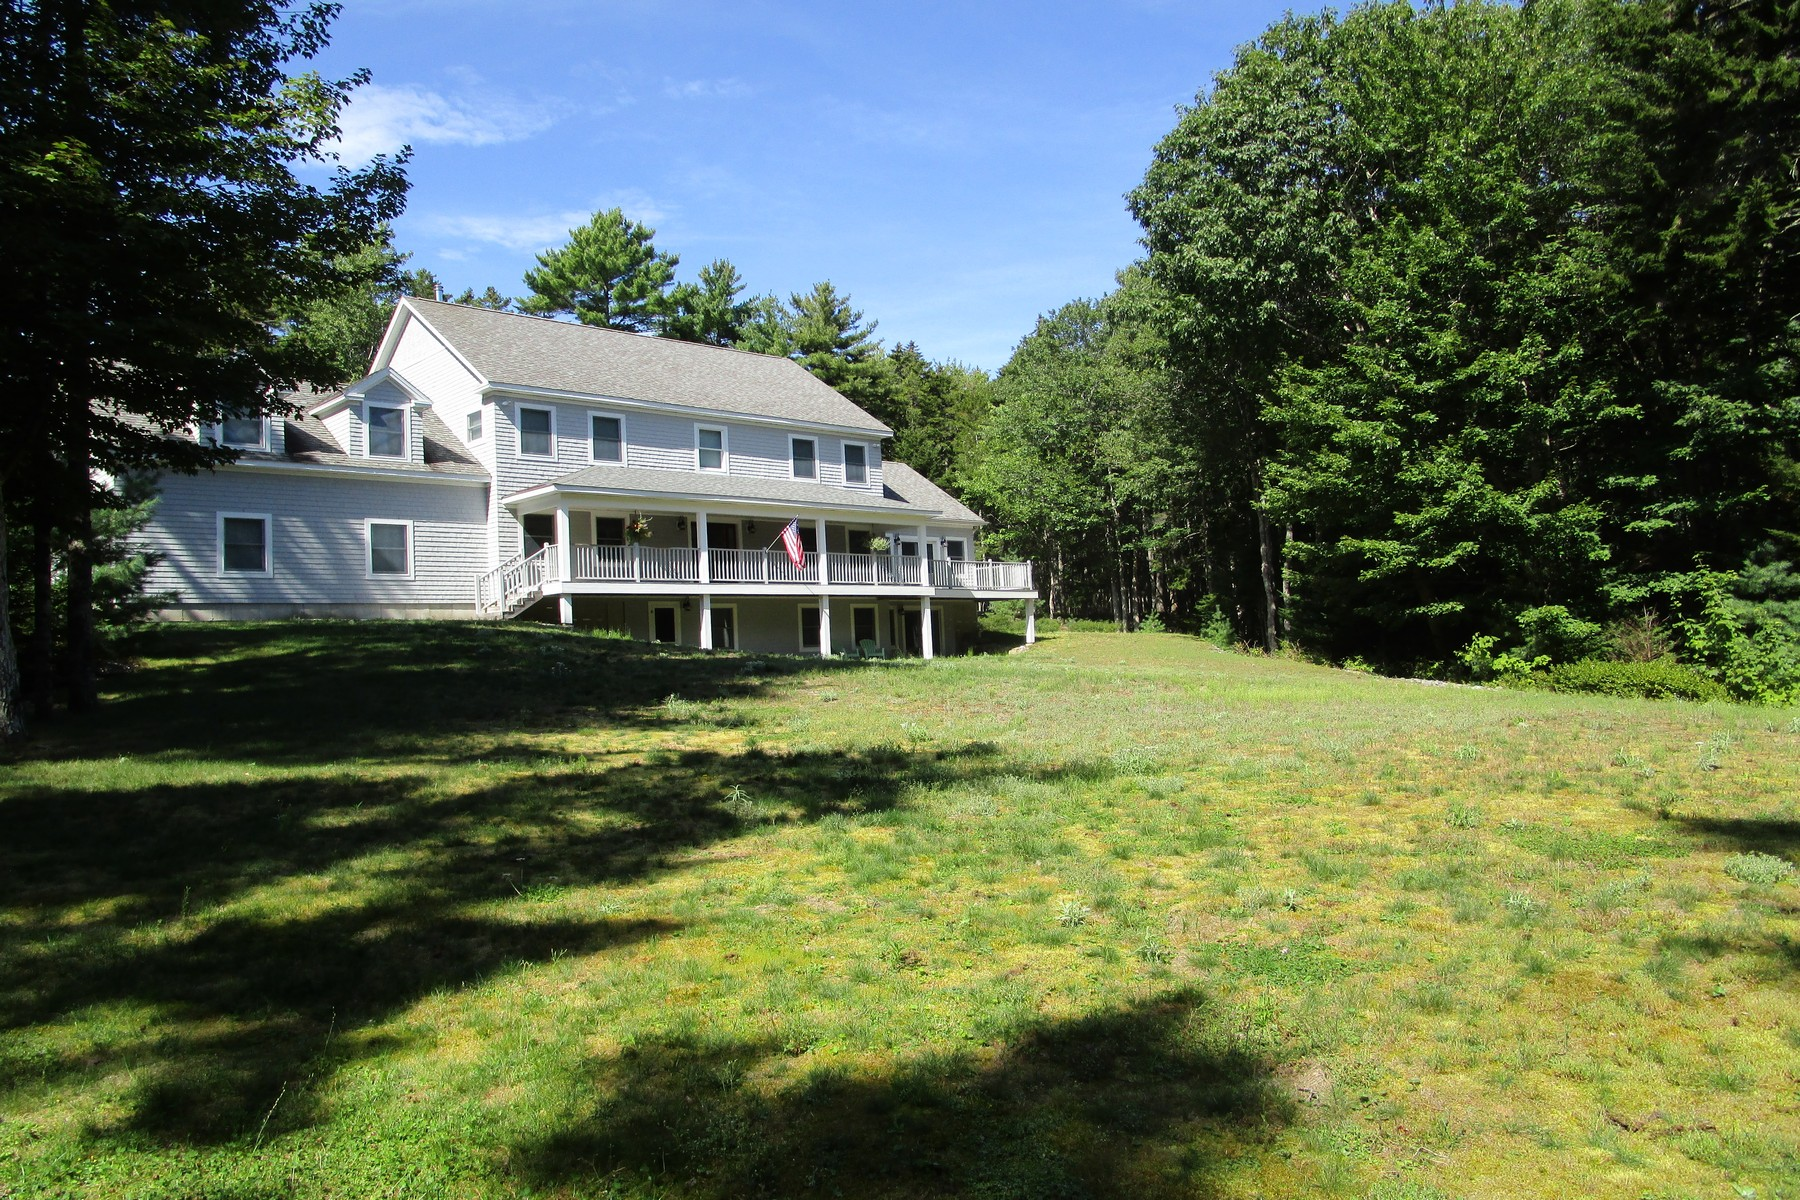 Single Family Homes for Sale at Denning Brook Home 41 Denning Brook Road Mount Desert, Maine 04660 United States